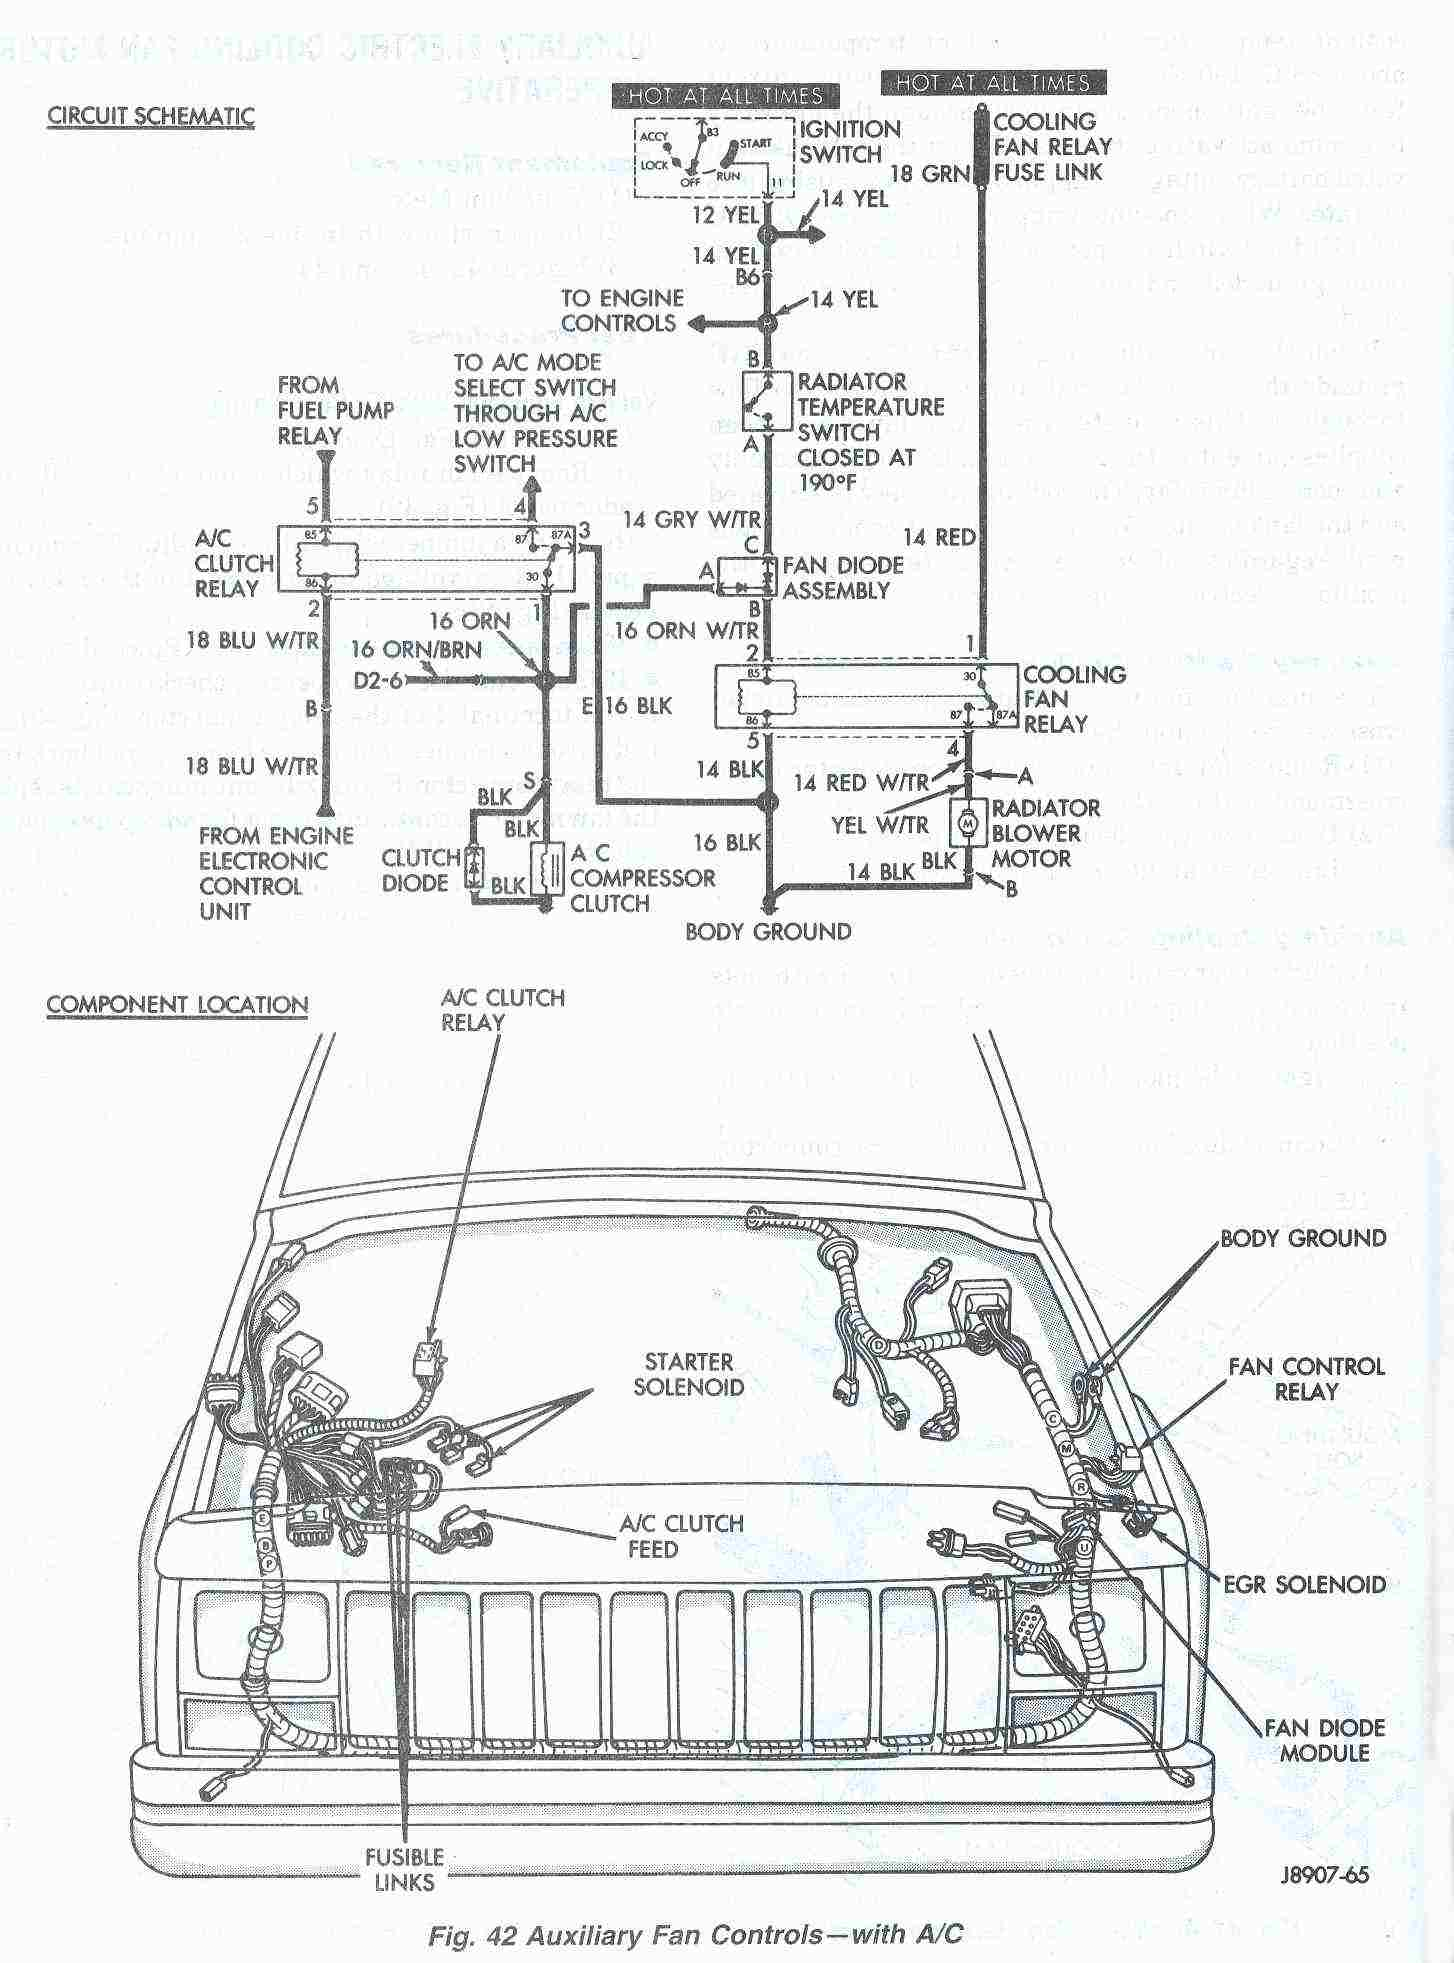 99 grand cherokee wiring diagram ground - wiring diagrams know-manage -  know-manage.alcuoredeldiabete.it  al cuore del diabete